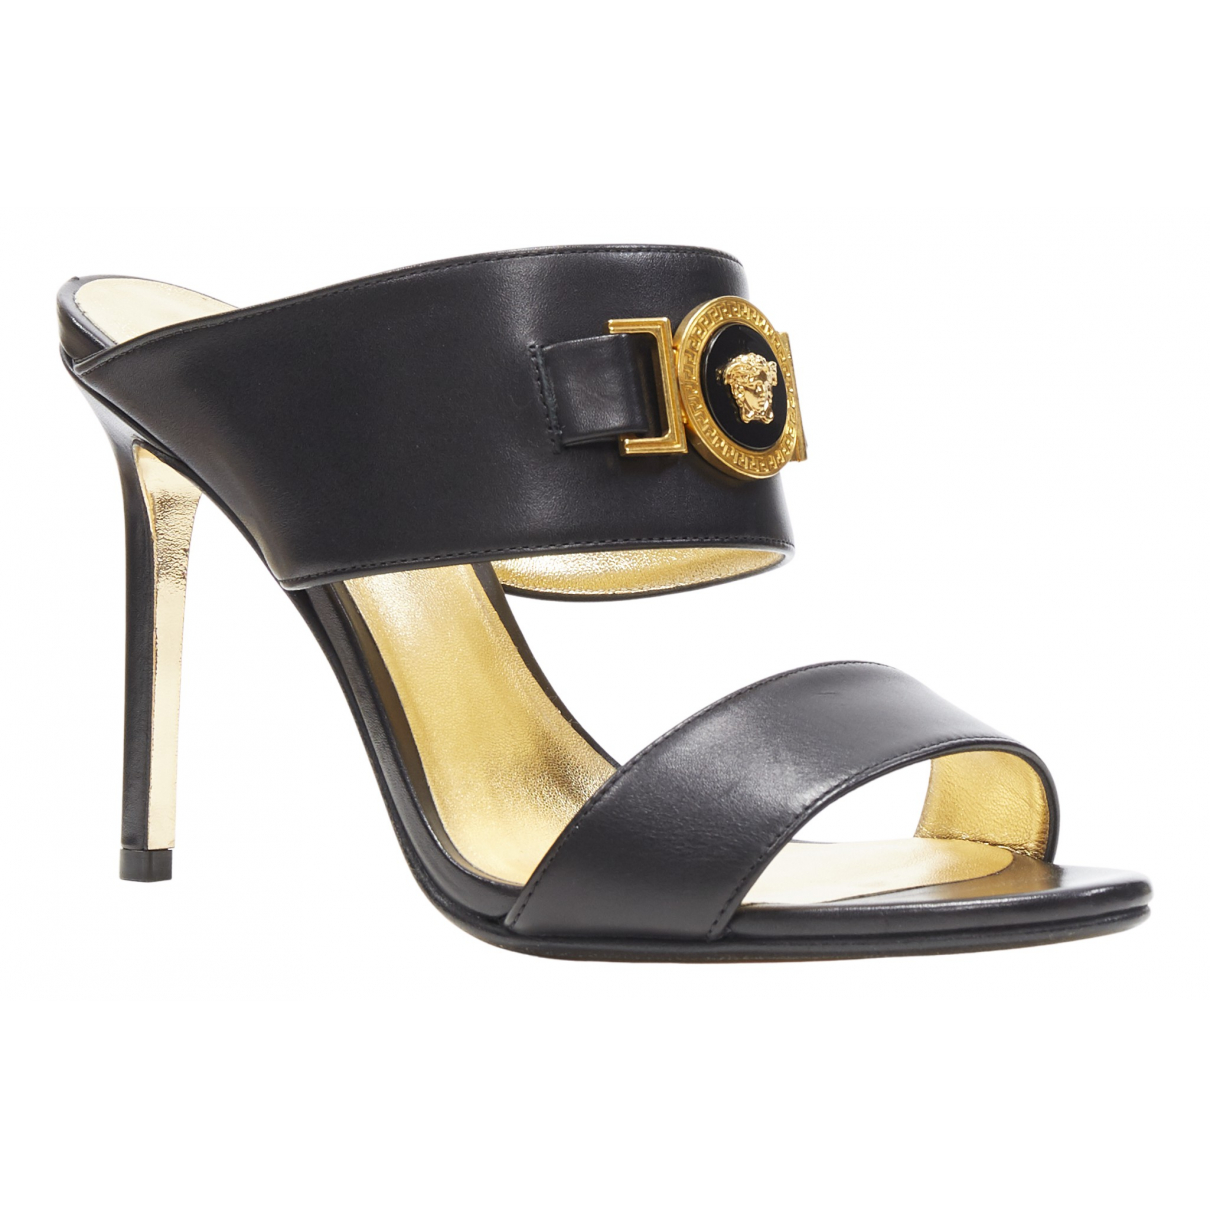 Versace N Black Leather Sandals for Women 37 EU